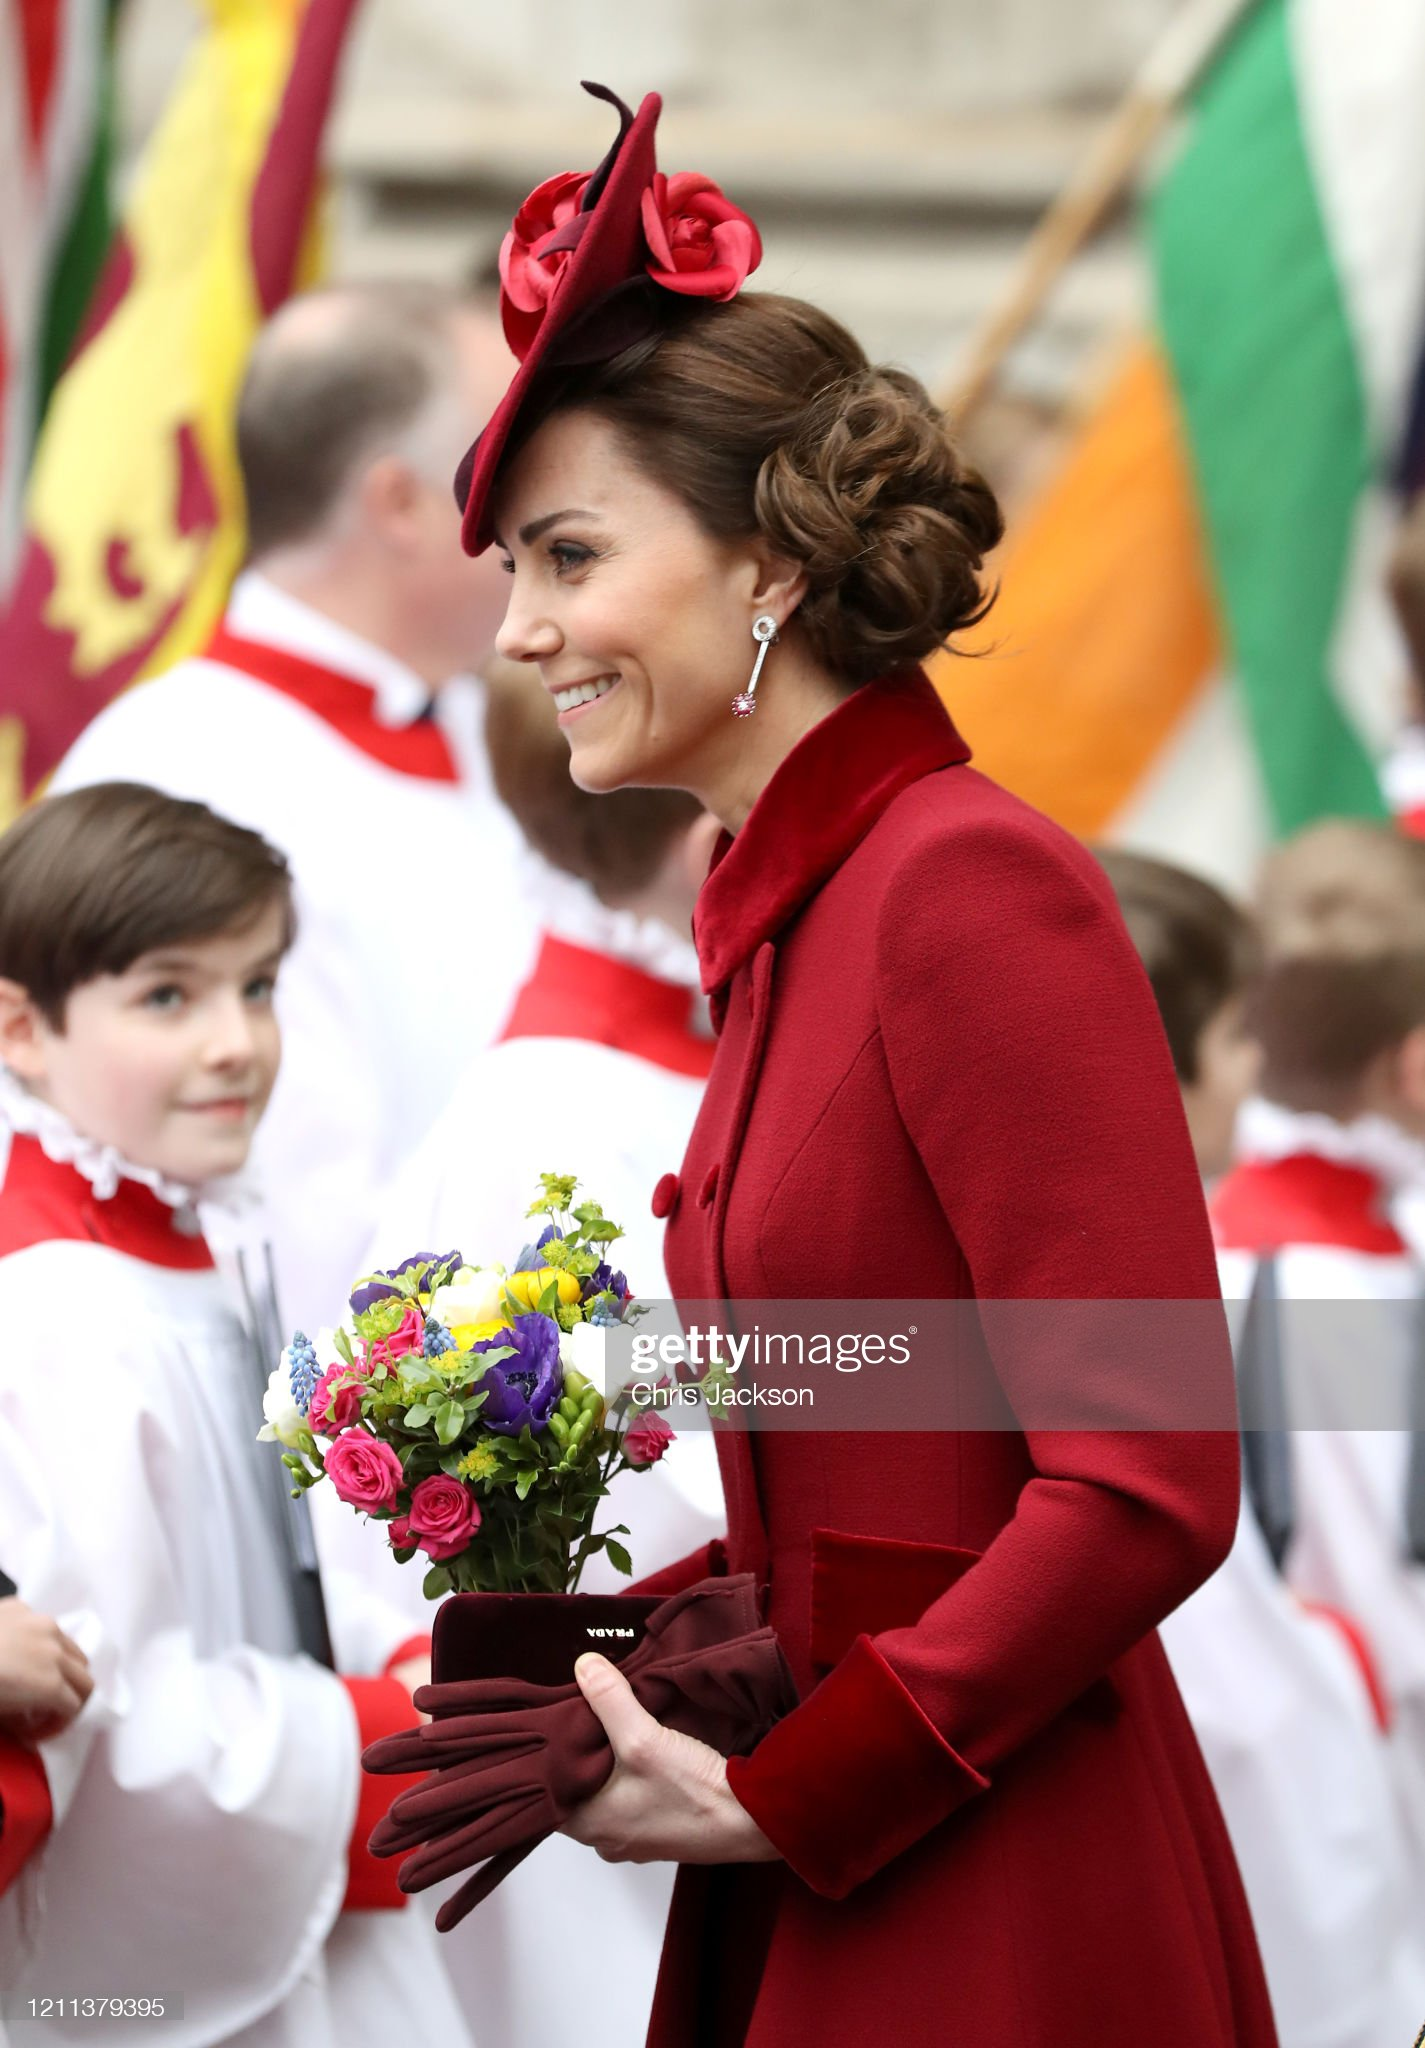 https://media.gettyimages.com/photos/catherine-duchess-of-cambridge-departs-the-commonwealth-day-service-picture-id1211379395?s=2048x2048